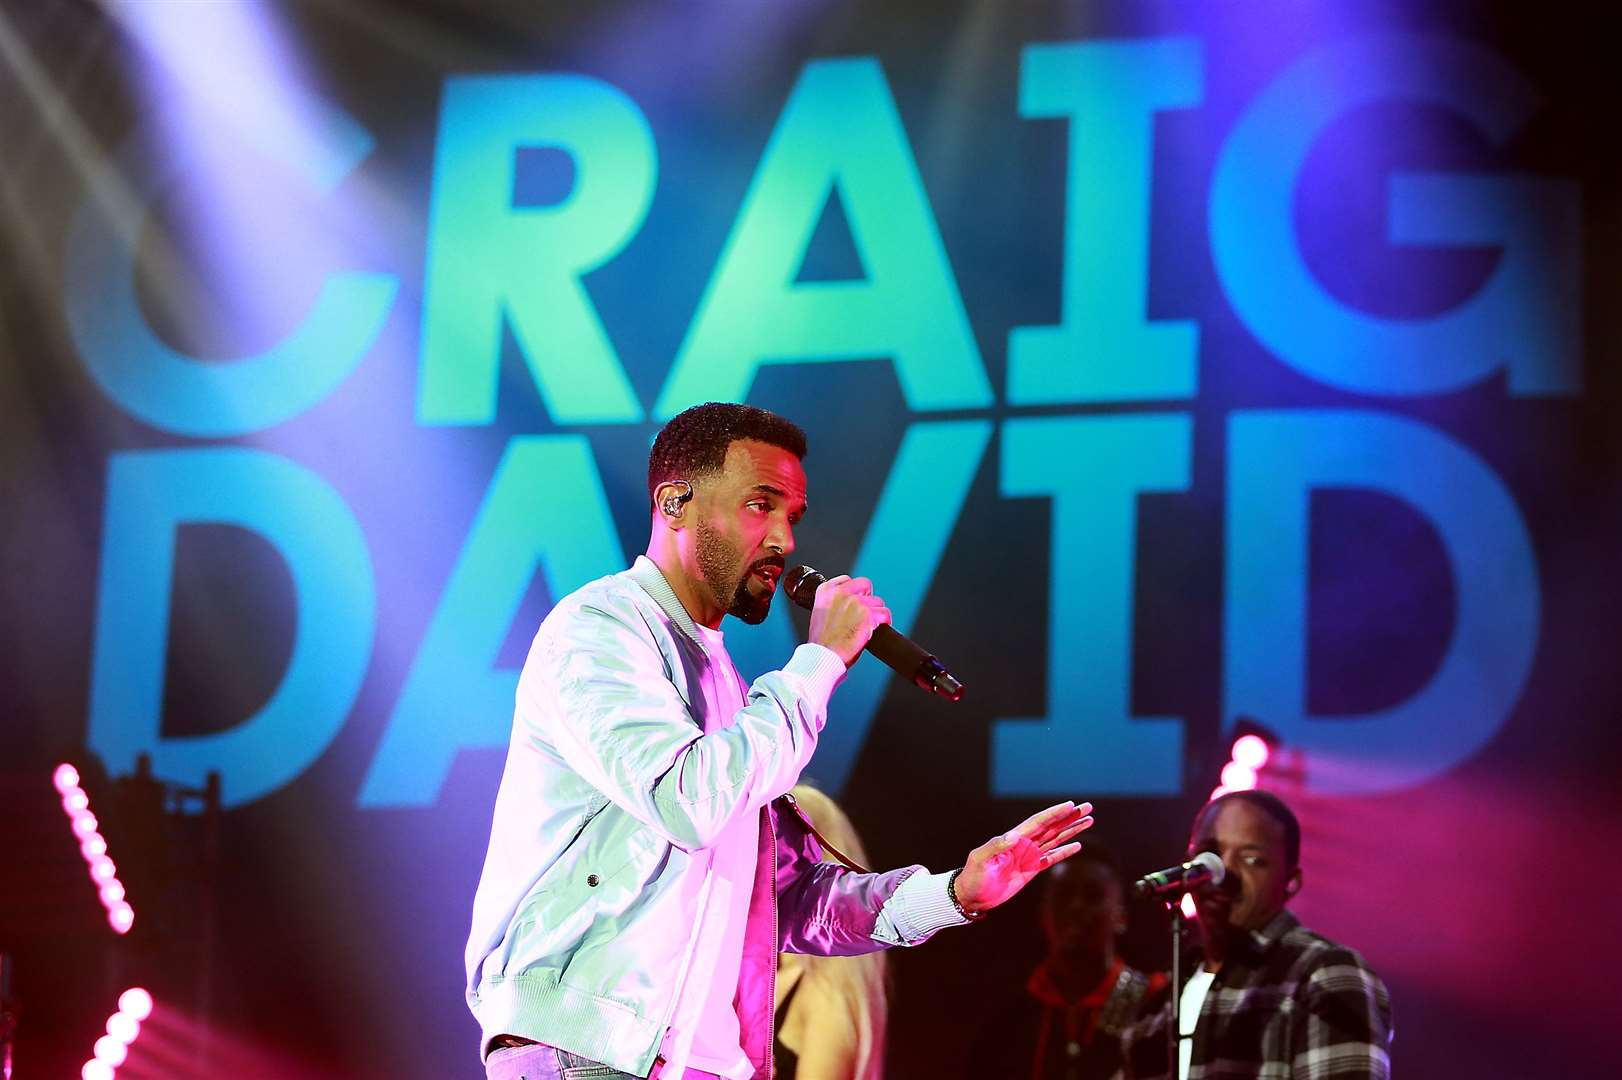 Craig David sang a range a new and old tracks